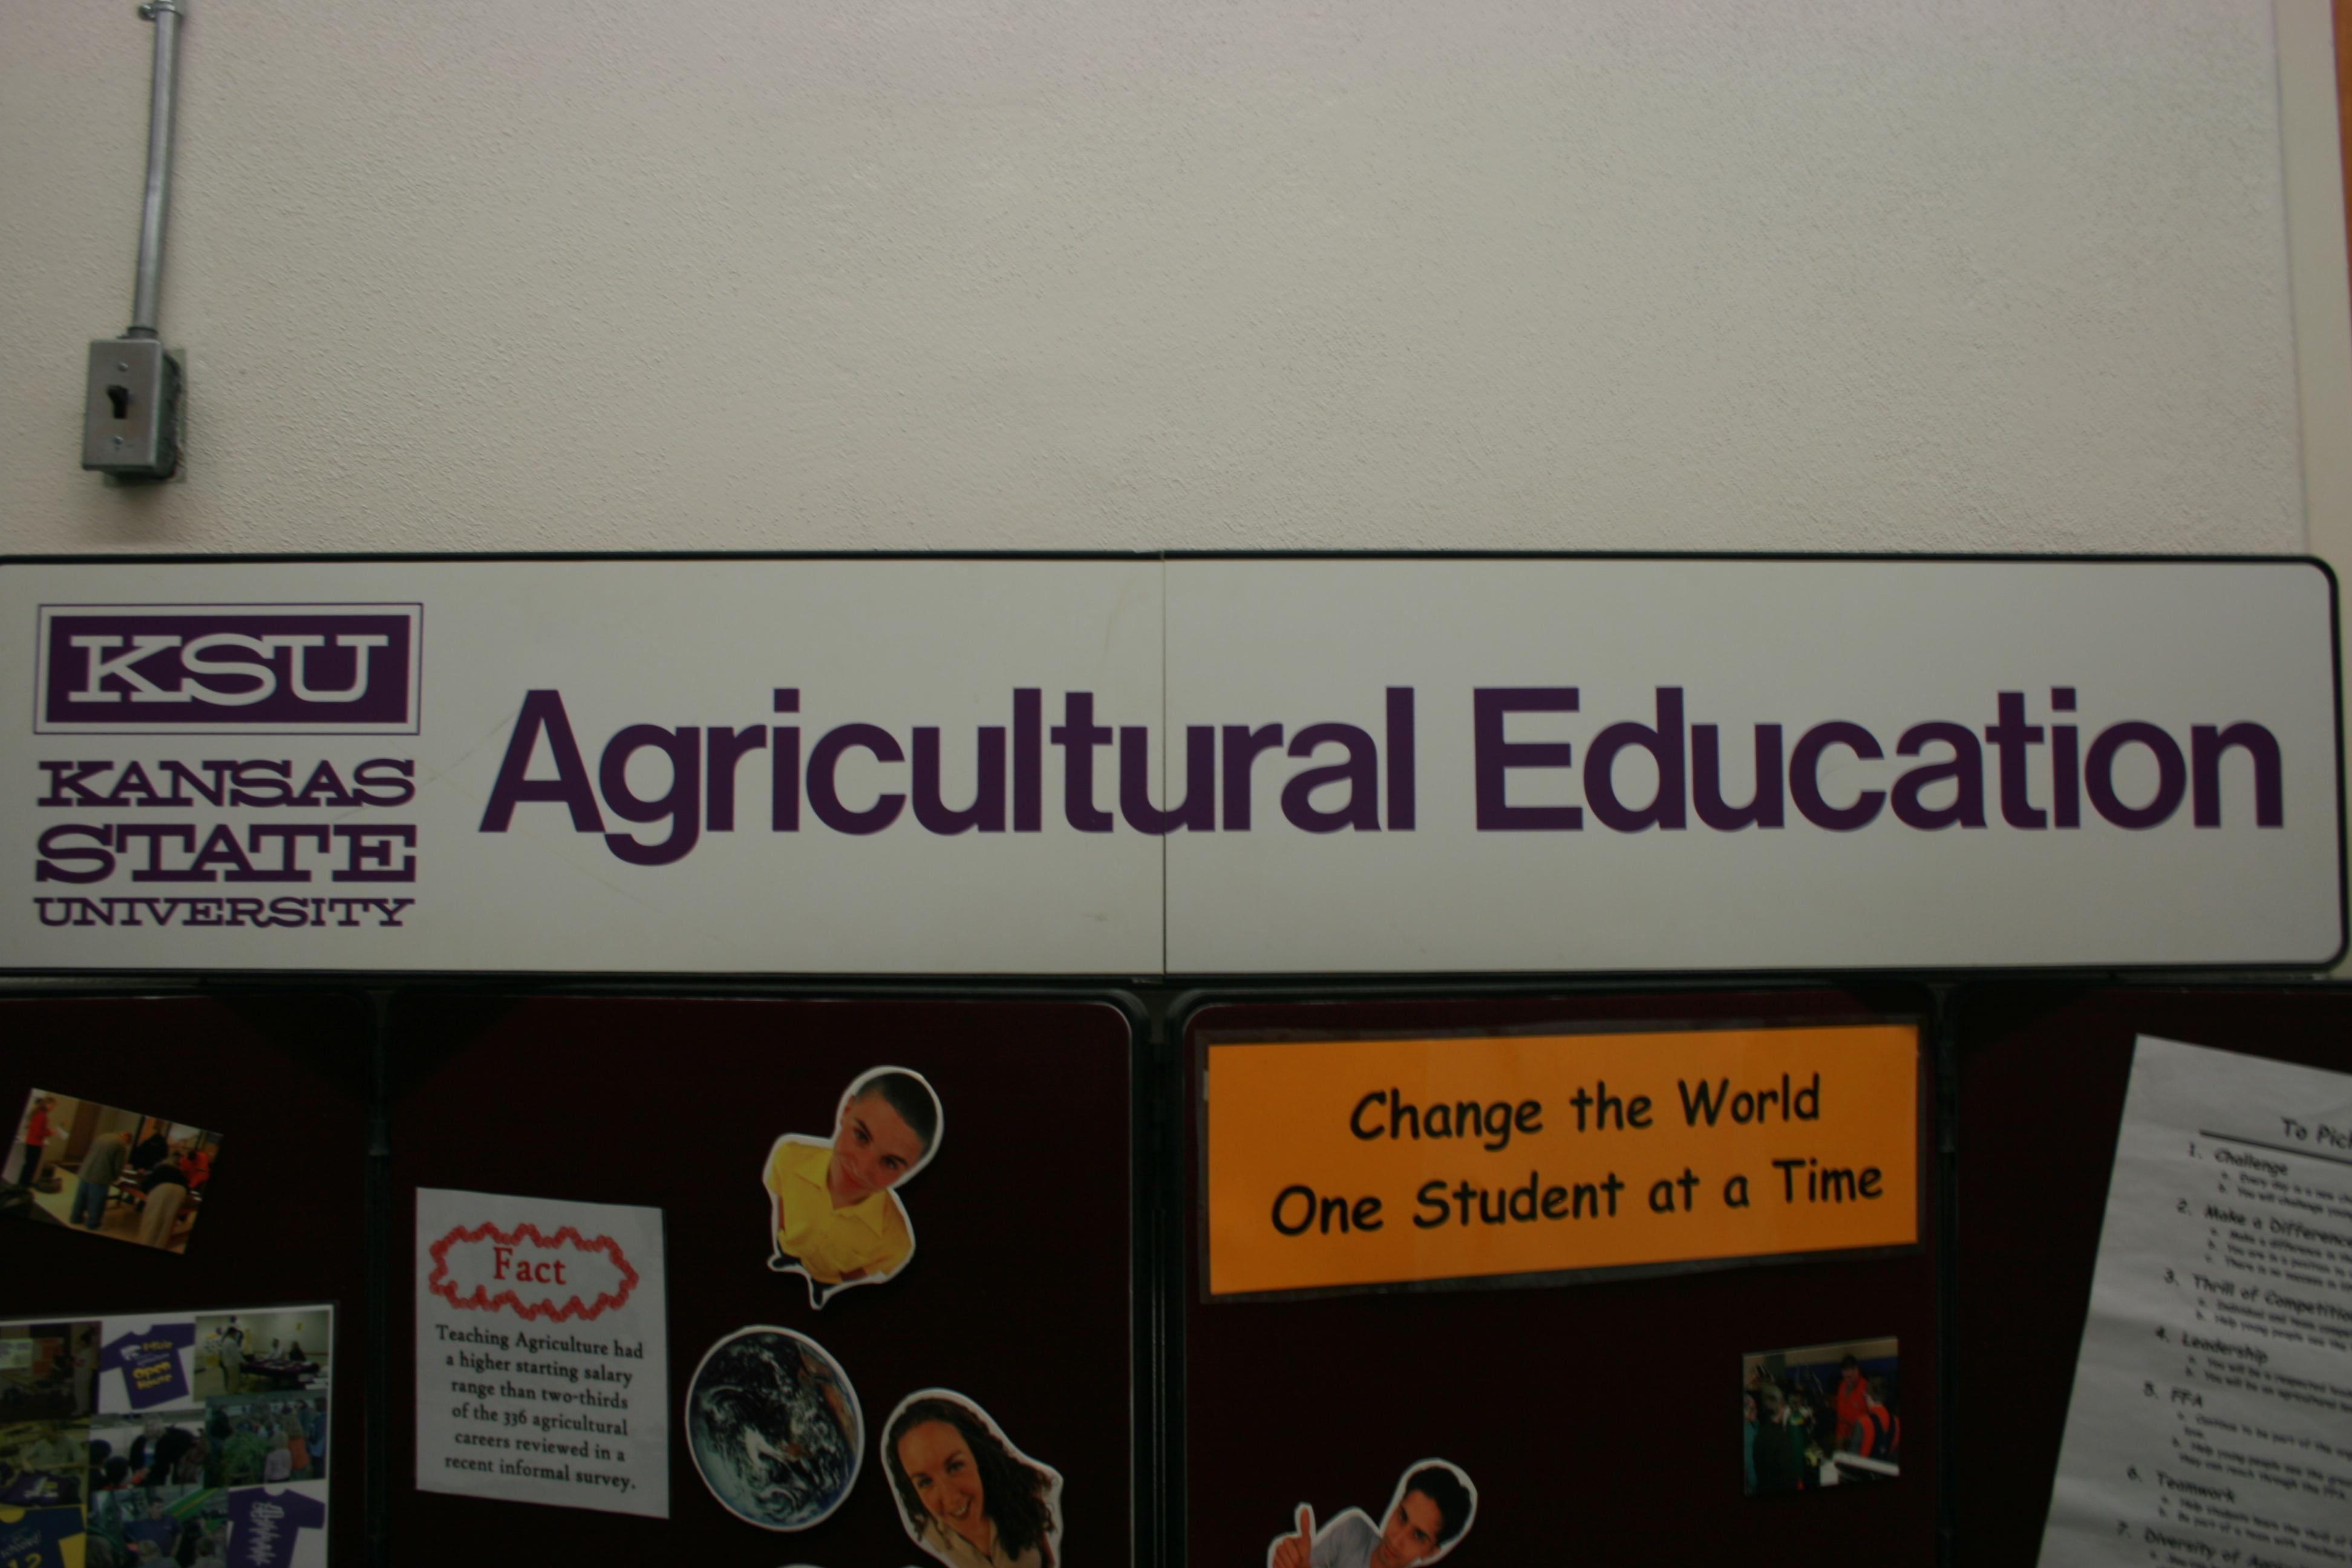 Agricultural Education Header Attachment to Display Board